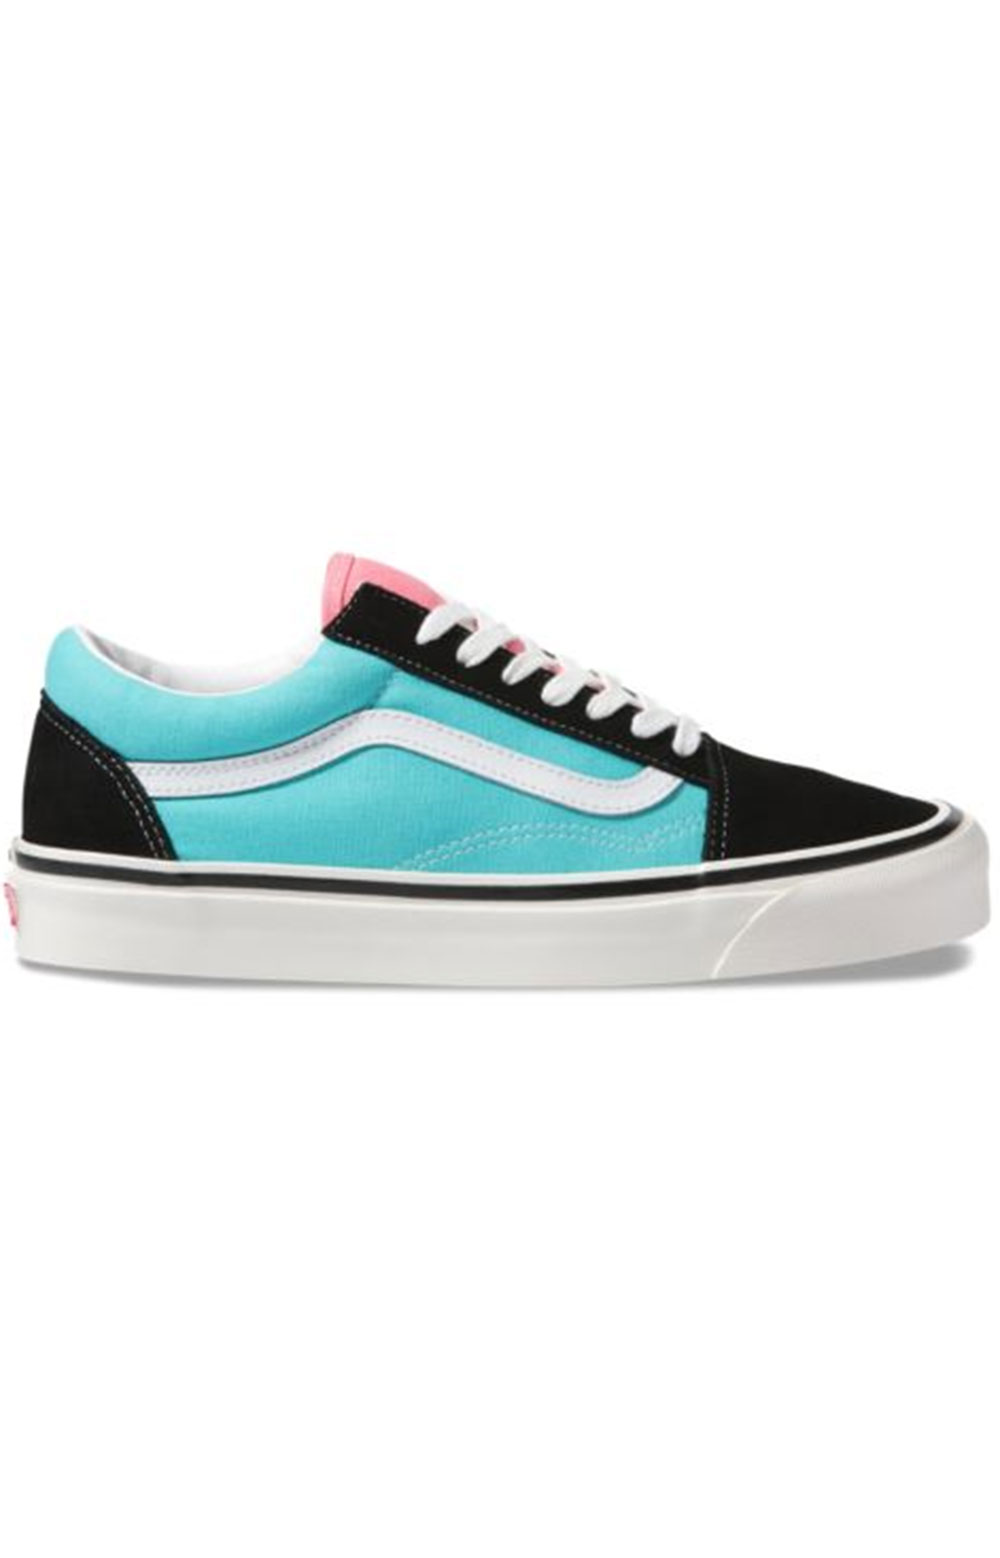 (8G2VPJ) Anaheim Factory Old Skool 36 DX Shoe - OG Black